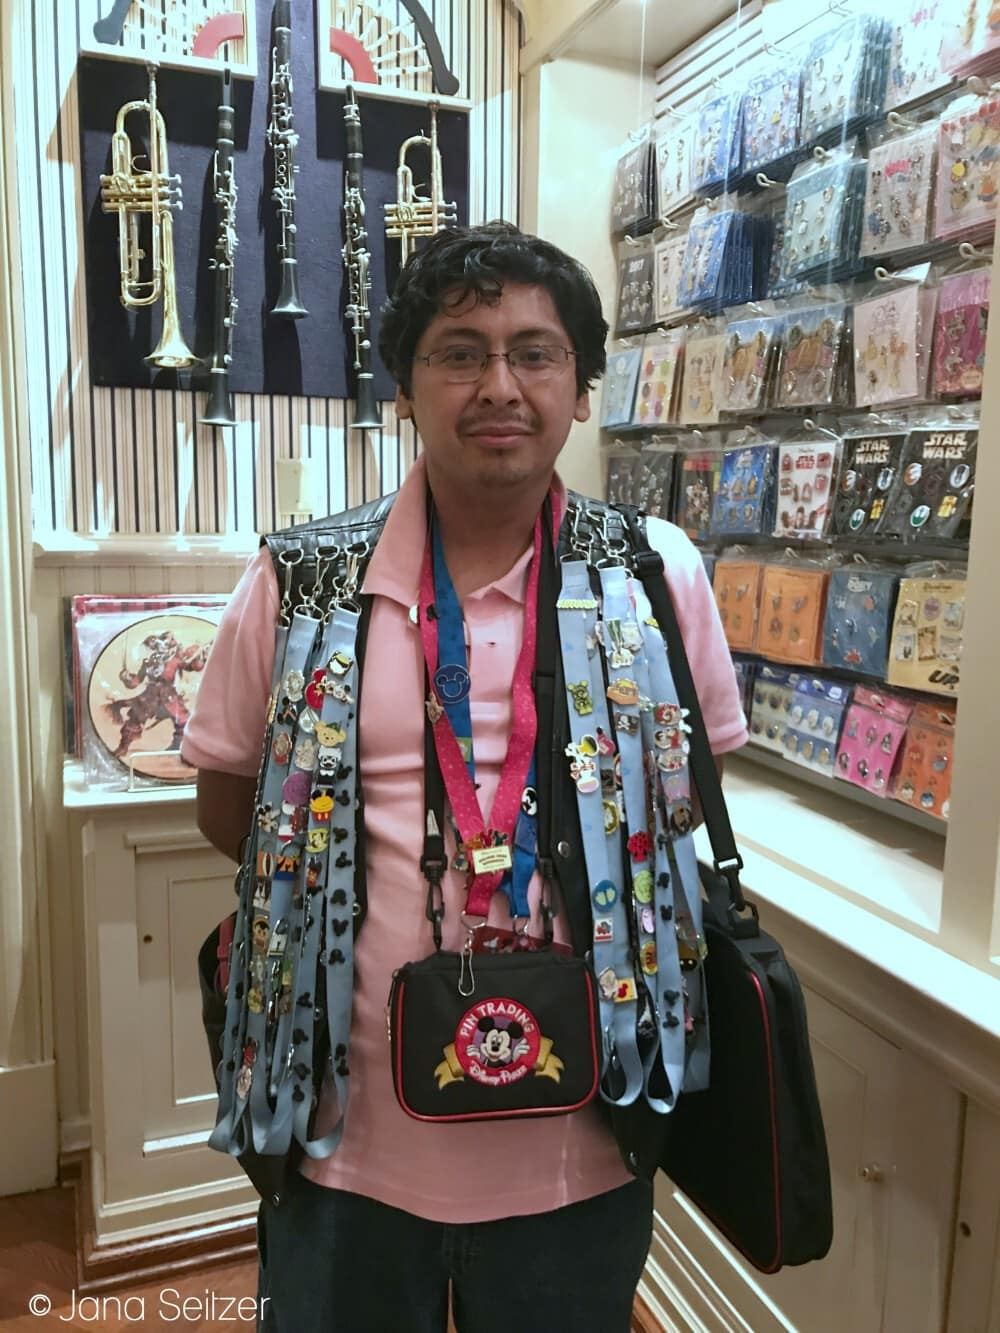 pro pin trader Beginner's Guide To Pin Trading at Disney World: Disney Pin Trading 101